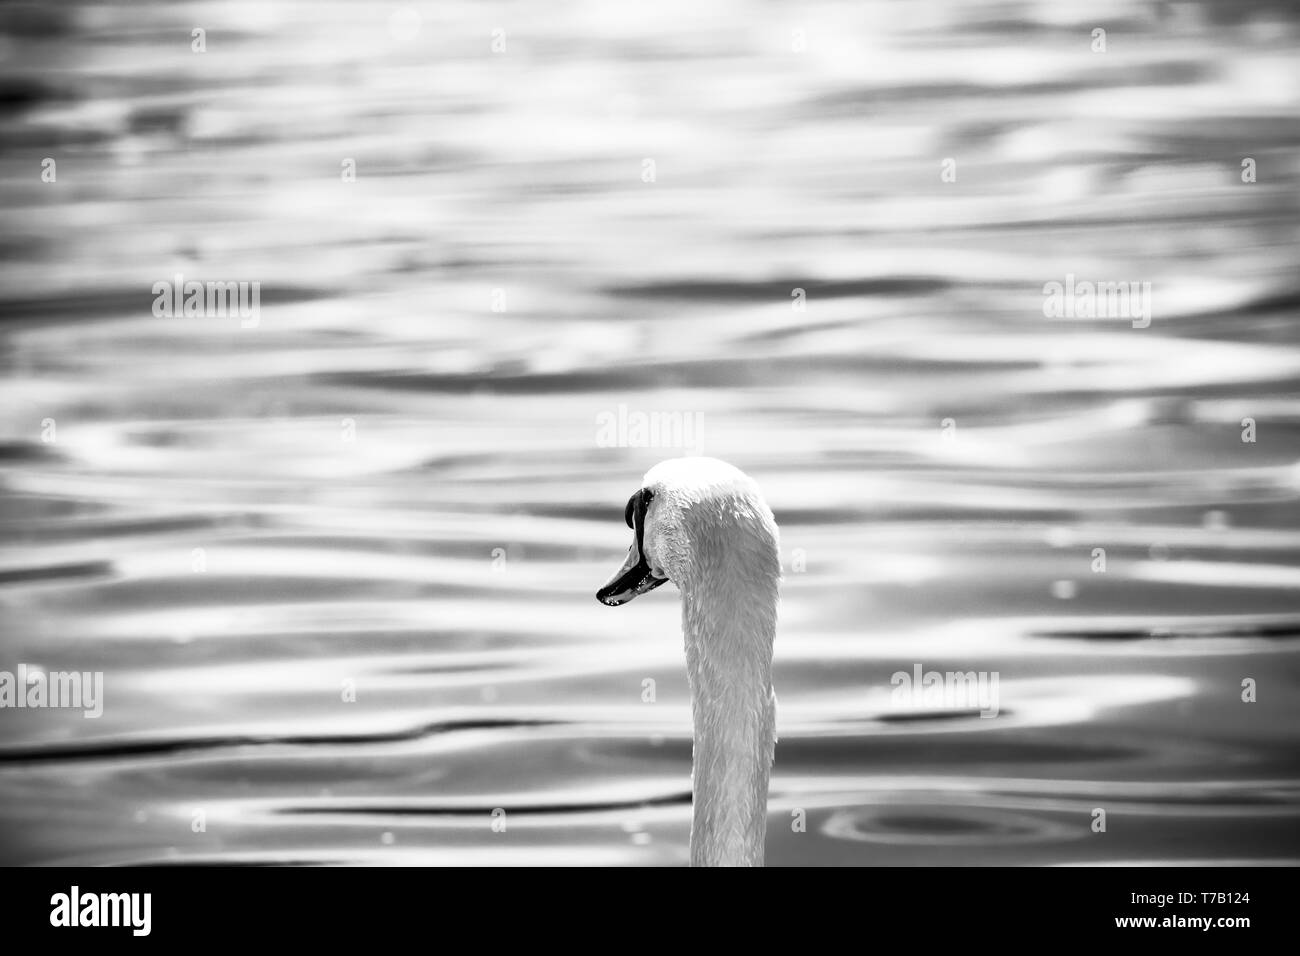 Hendersyde, Kelso, Scottish Borders, UK. 29th April 2019. A Mute Swan (Cygnus olor) keeps cool on the River Tweed during a hot day in the Scottish Bor - Stock Image